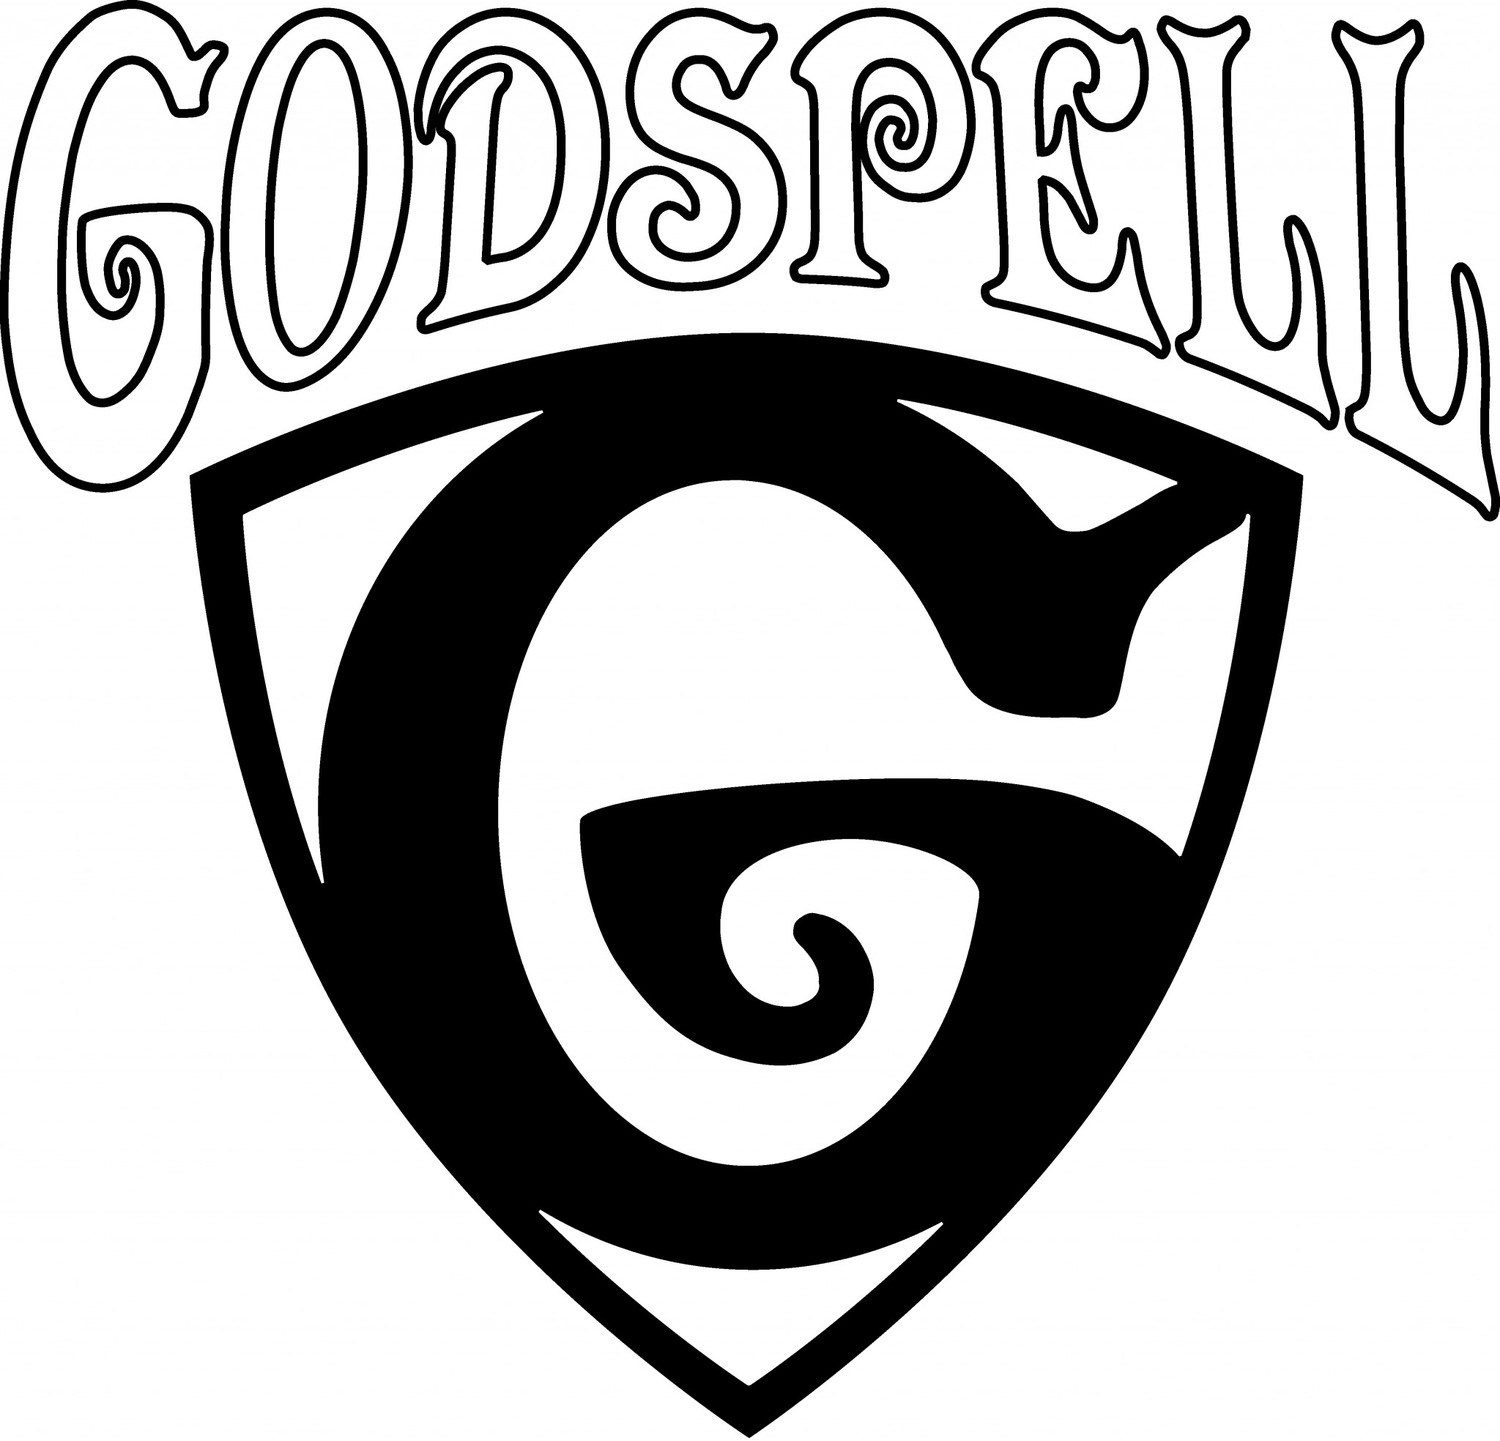 godspell paper Godspell sheet music - piano/vocal sheet music by stephen schwartz: hal leonard shop the world's largest sheet music selection today at sheet music plus.